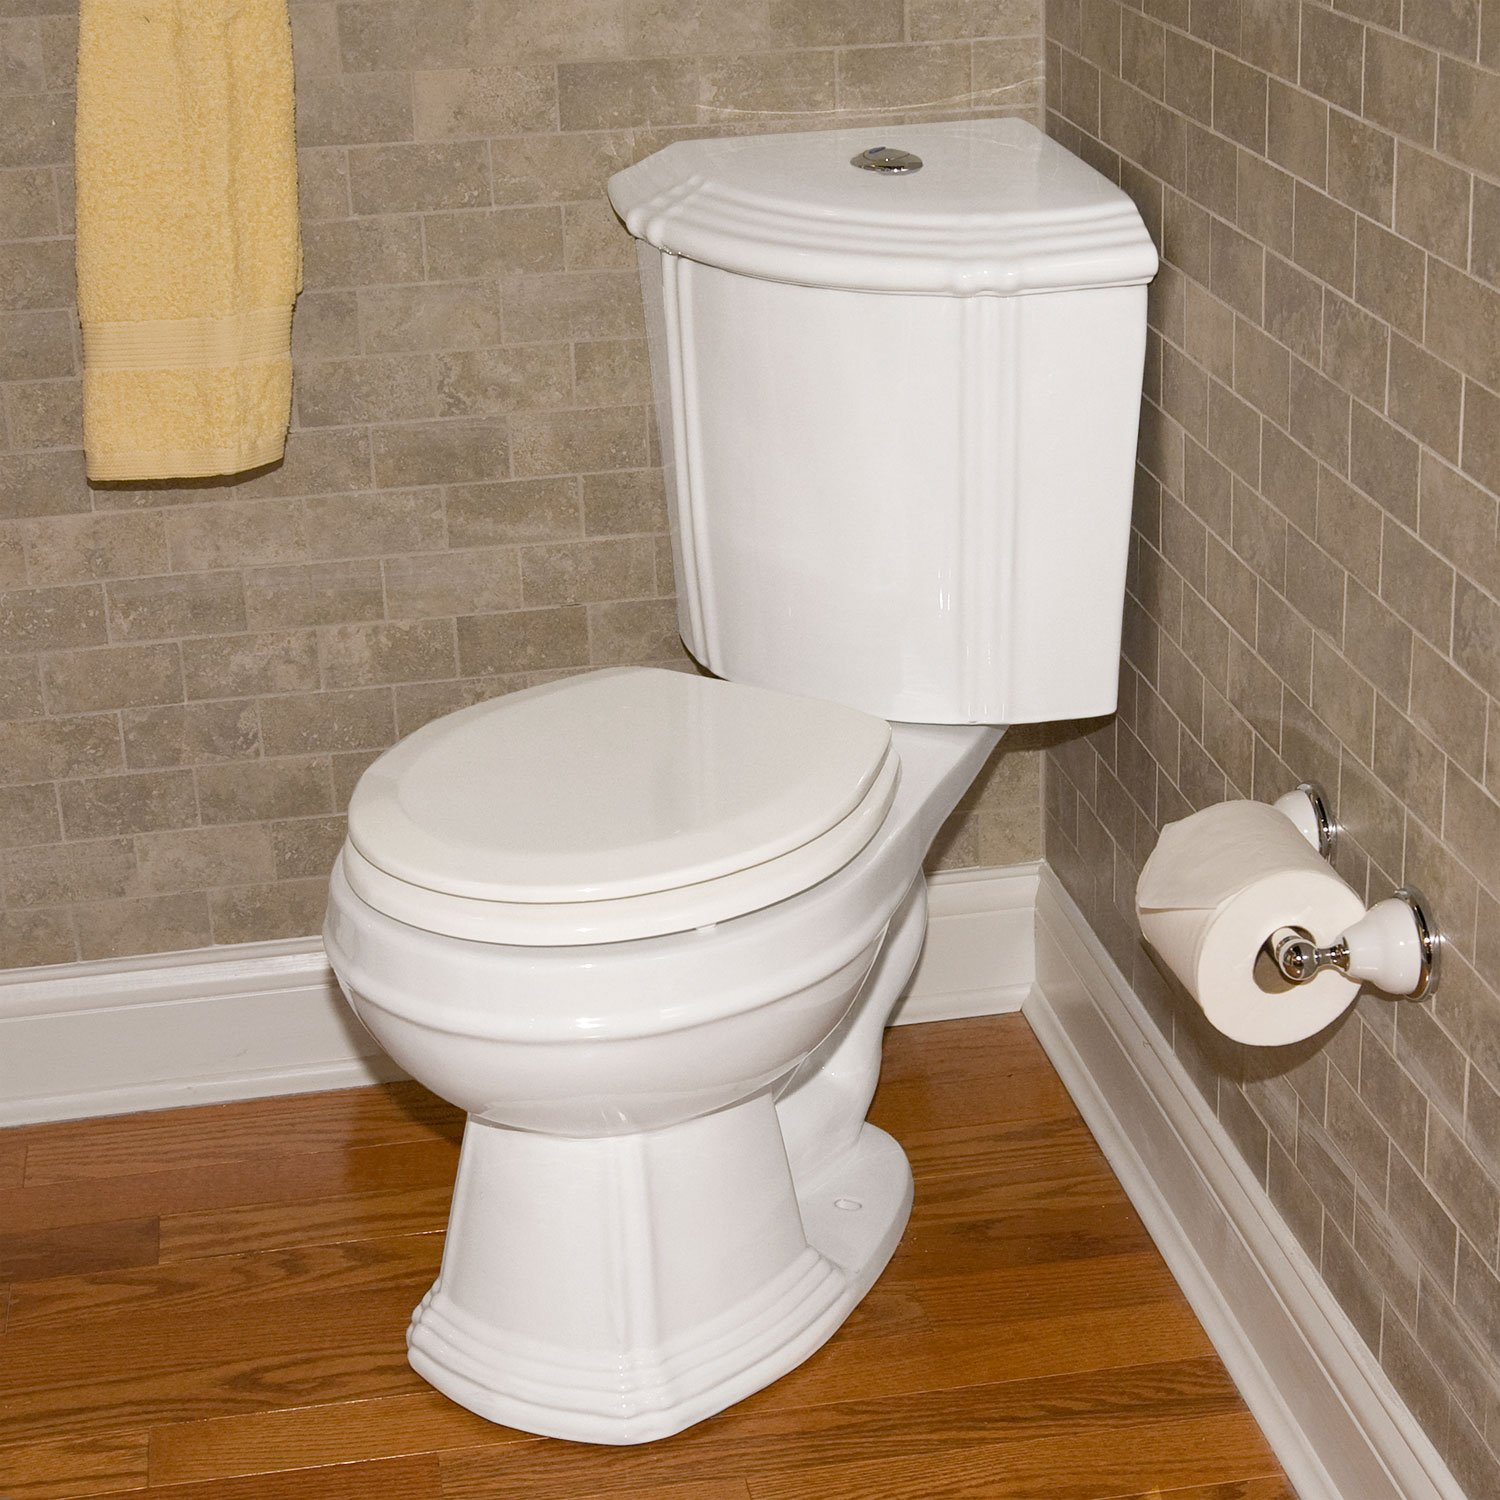 Corner toilet two piece with tank toilet decorations - Corner toilets for small spaces style ...